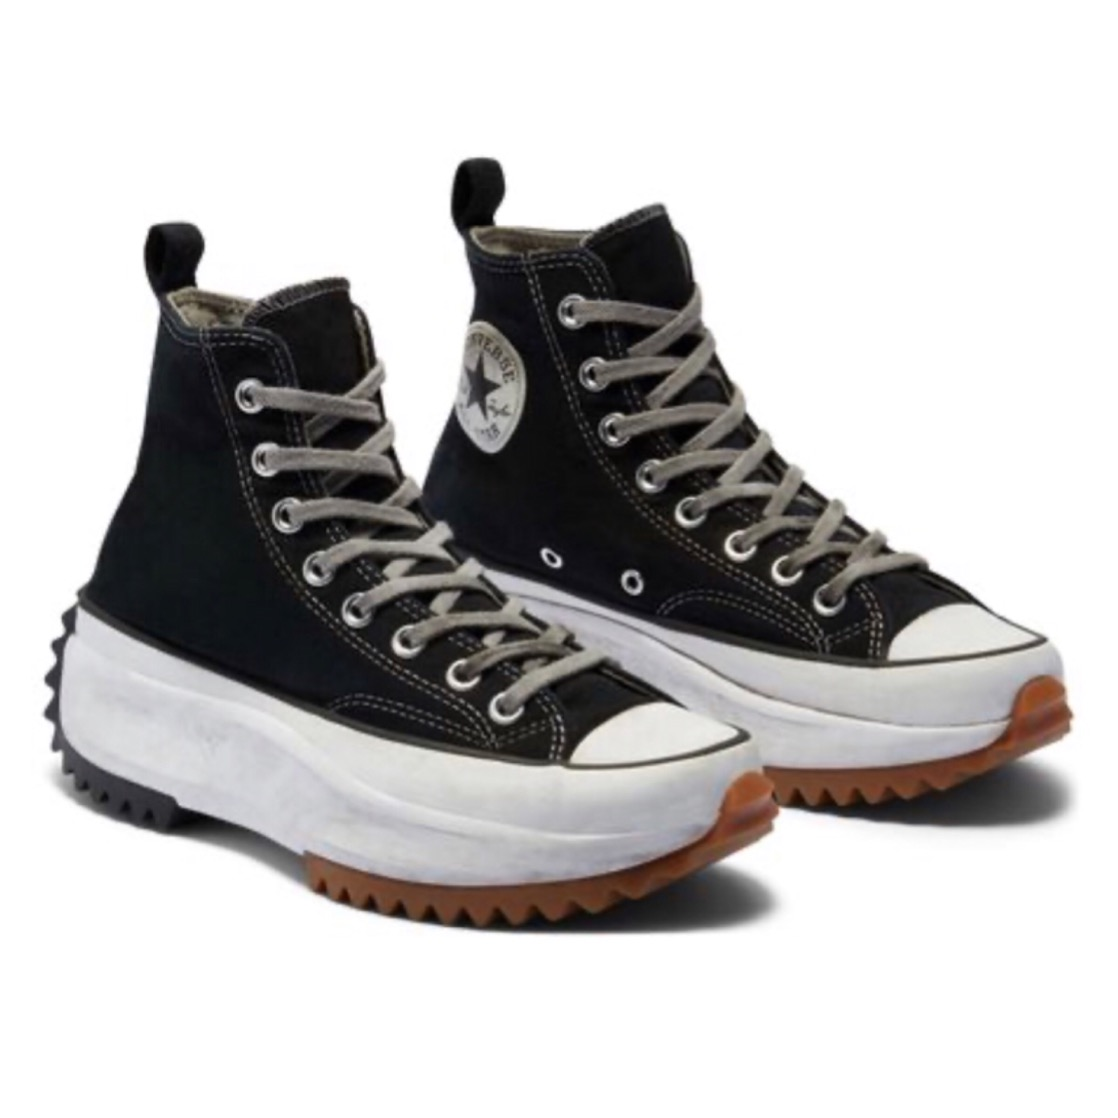 run star hike high top converse